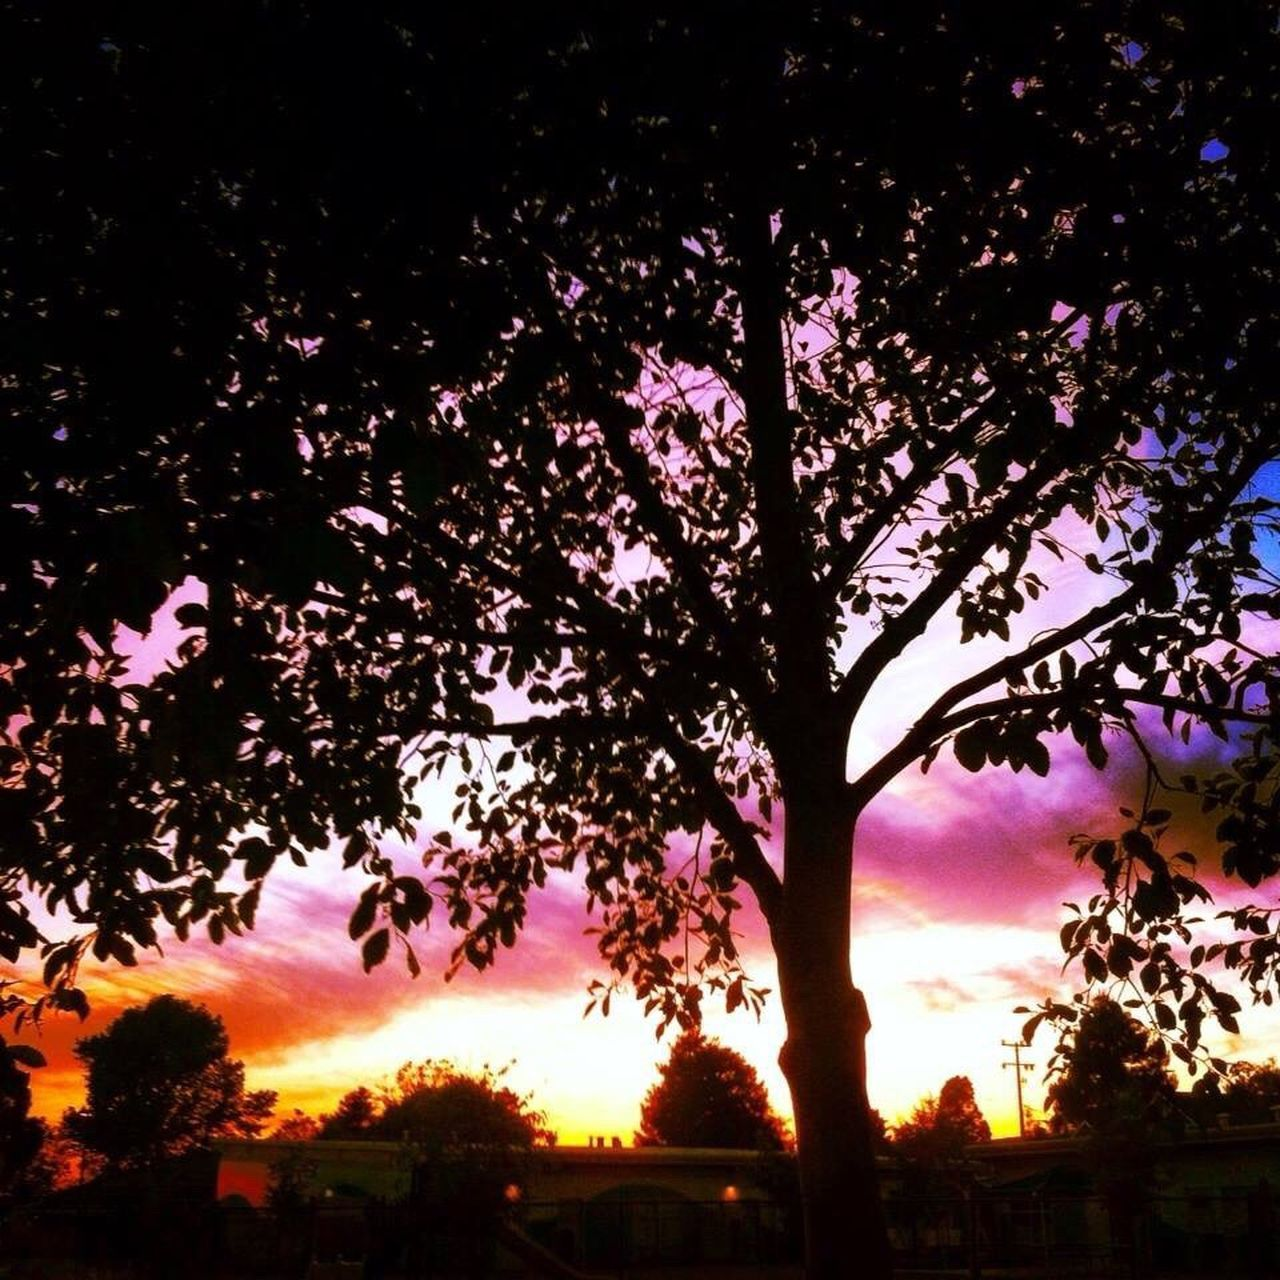 tree, nature, silhouette, growth, beauty in nature, no people, sunset, outdoors, sky, scenics, branch, low angle view, flower, freshness, day